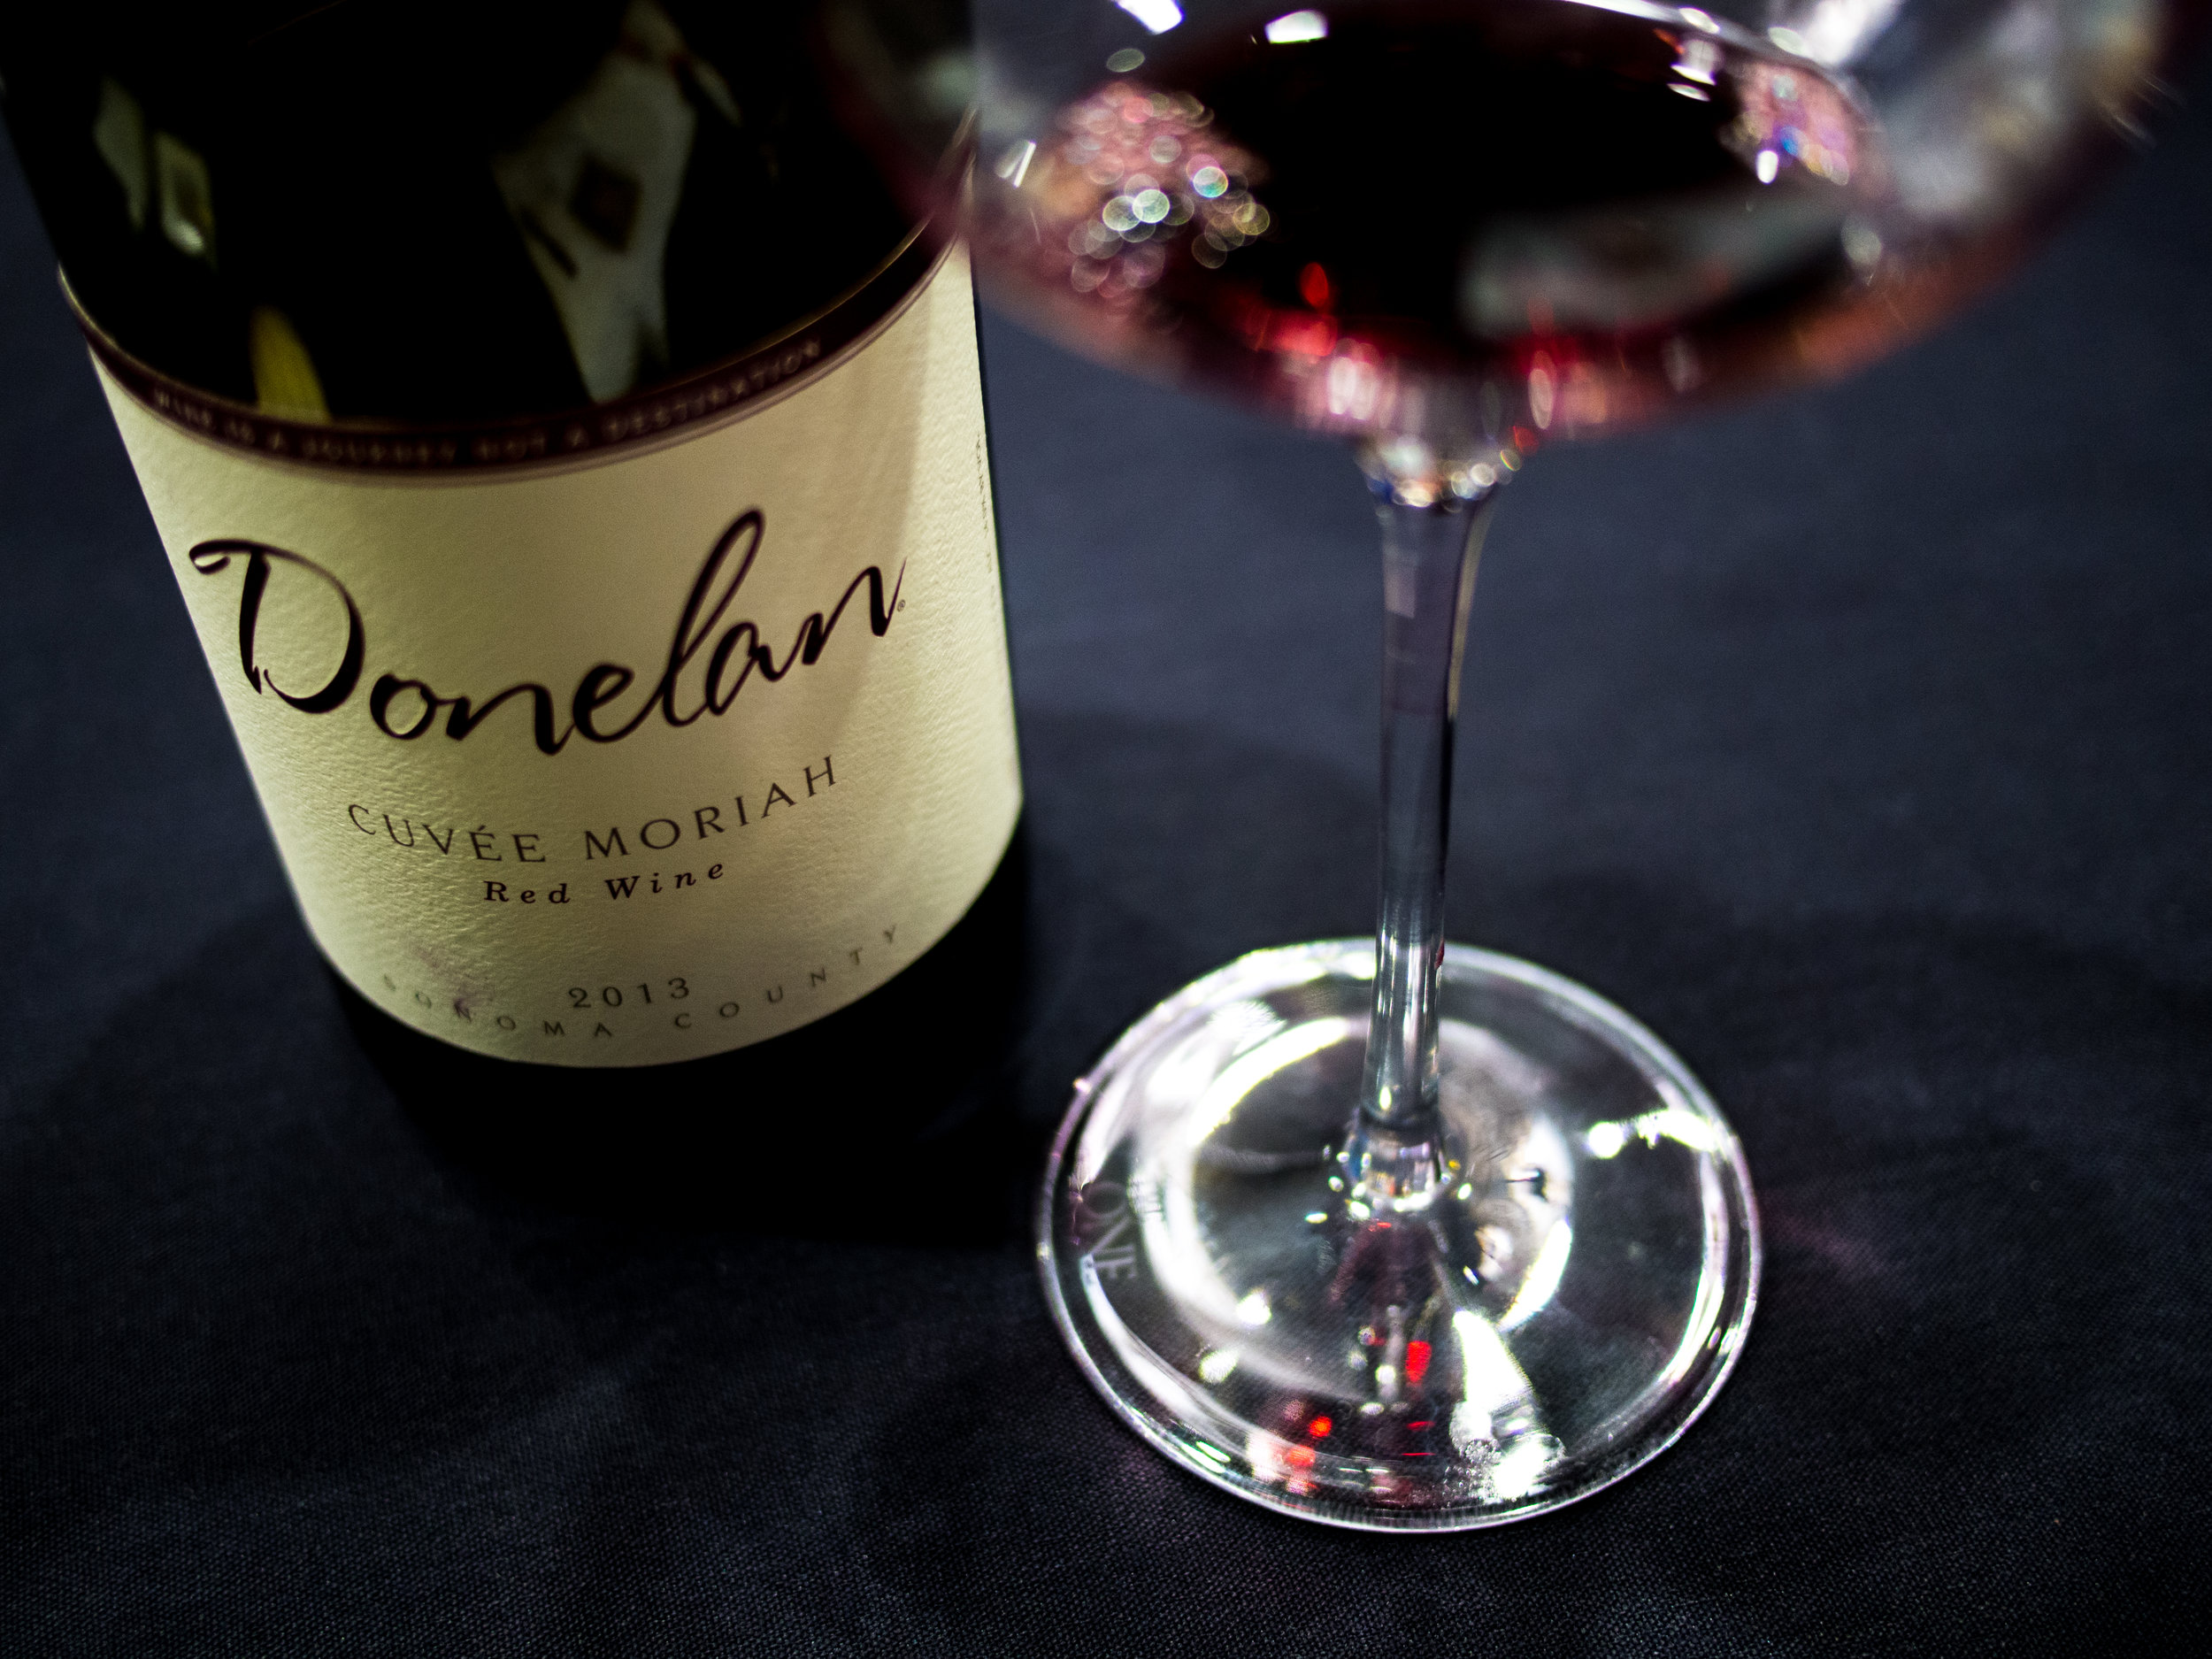 Musings by the Glass - Wines from Wine Bloggers Conference - Donelan Cuvee Moriah Grenache Blend from Sonoma California